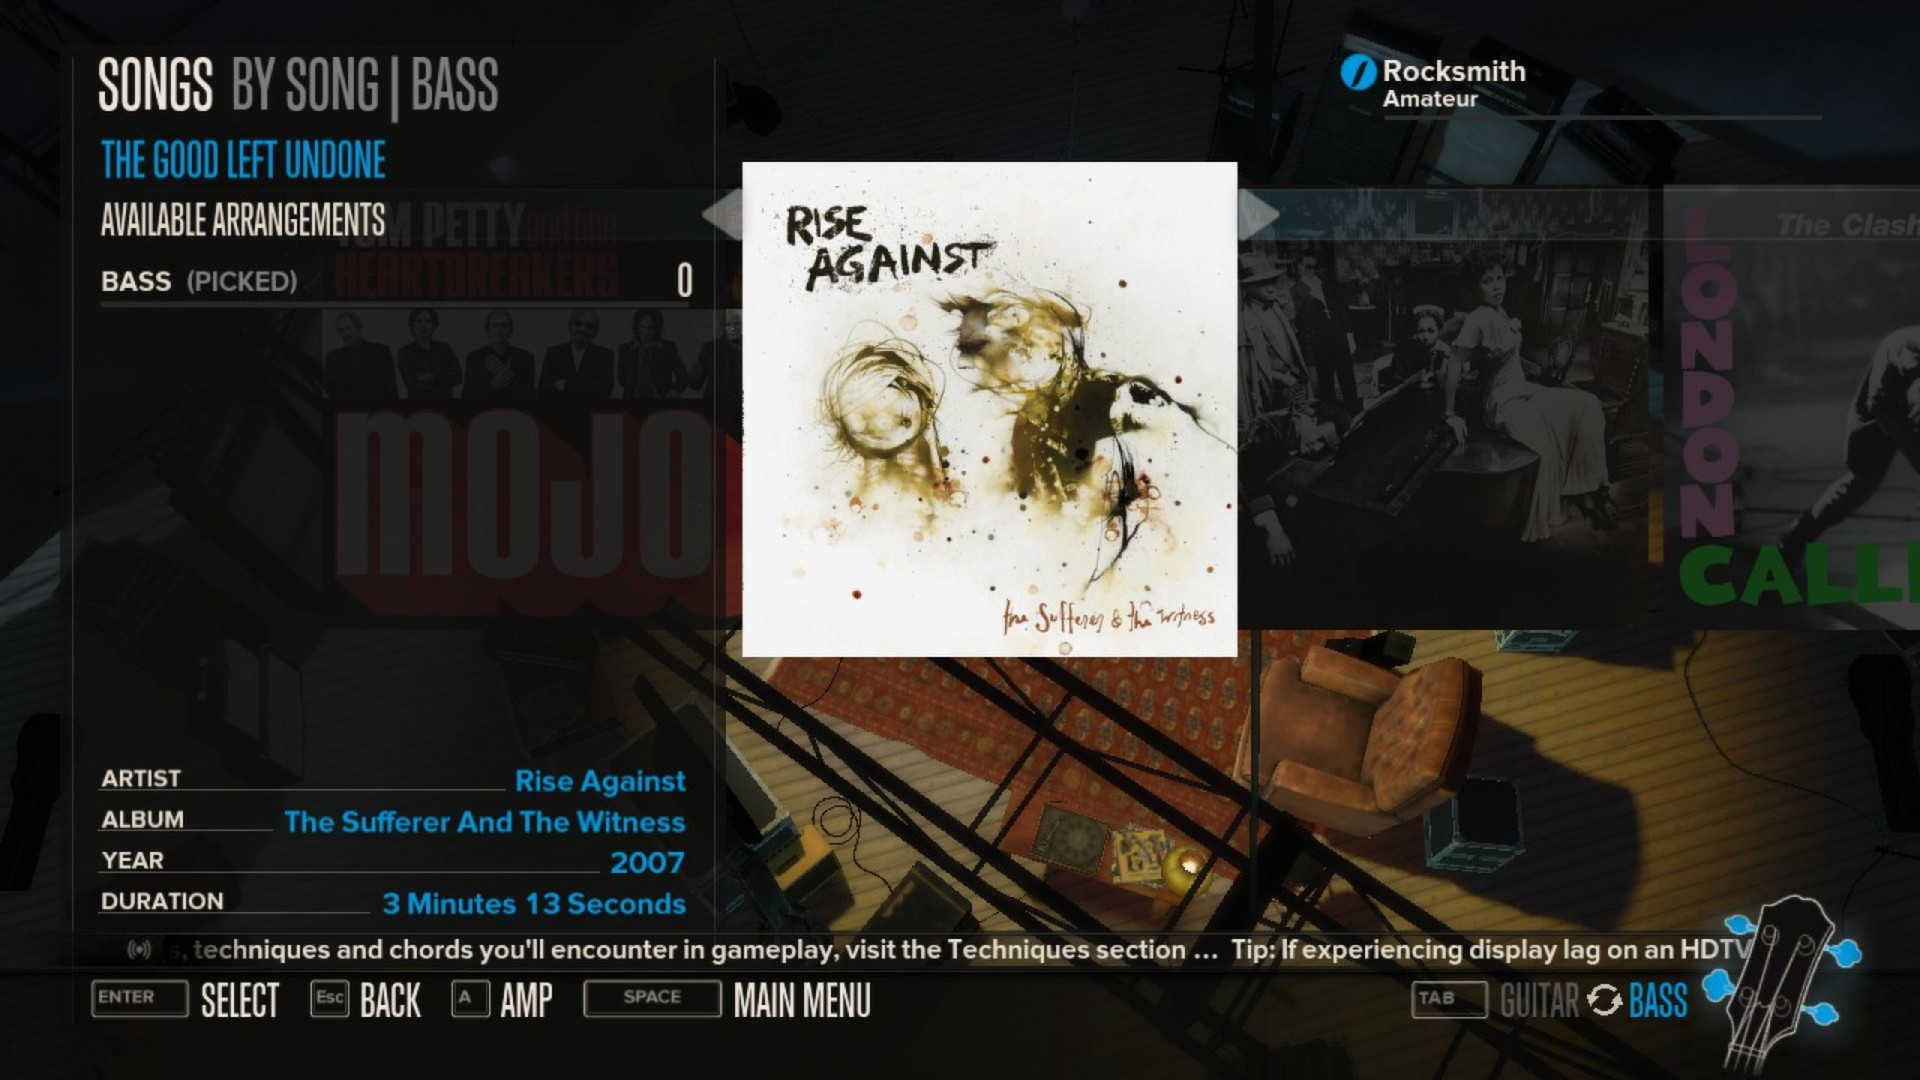 Rocksmith Rise Against The Good Left Undone 2013 Promotional